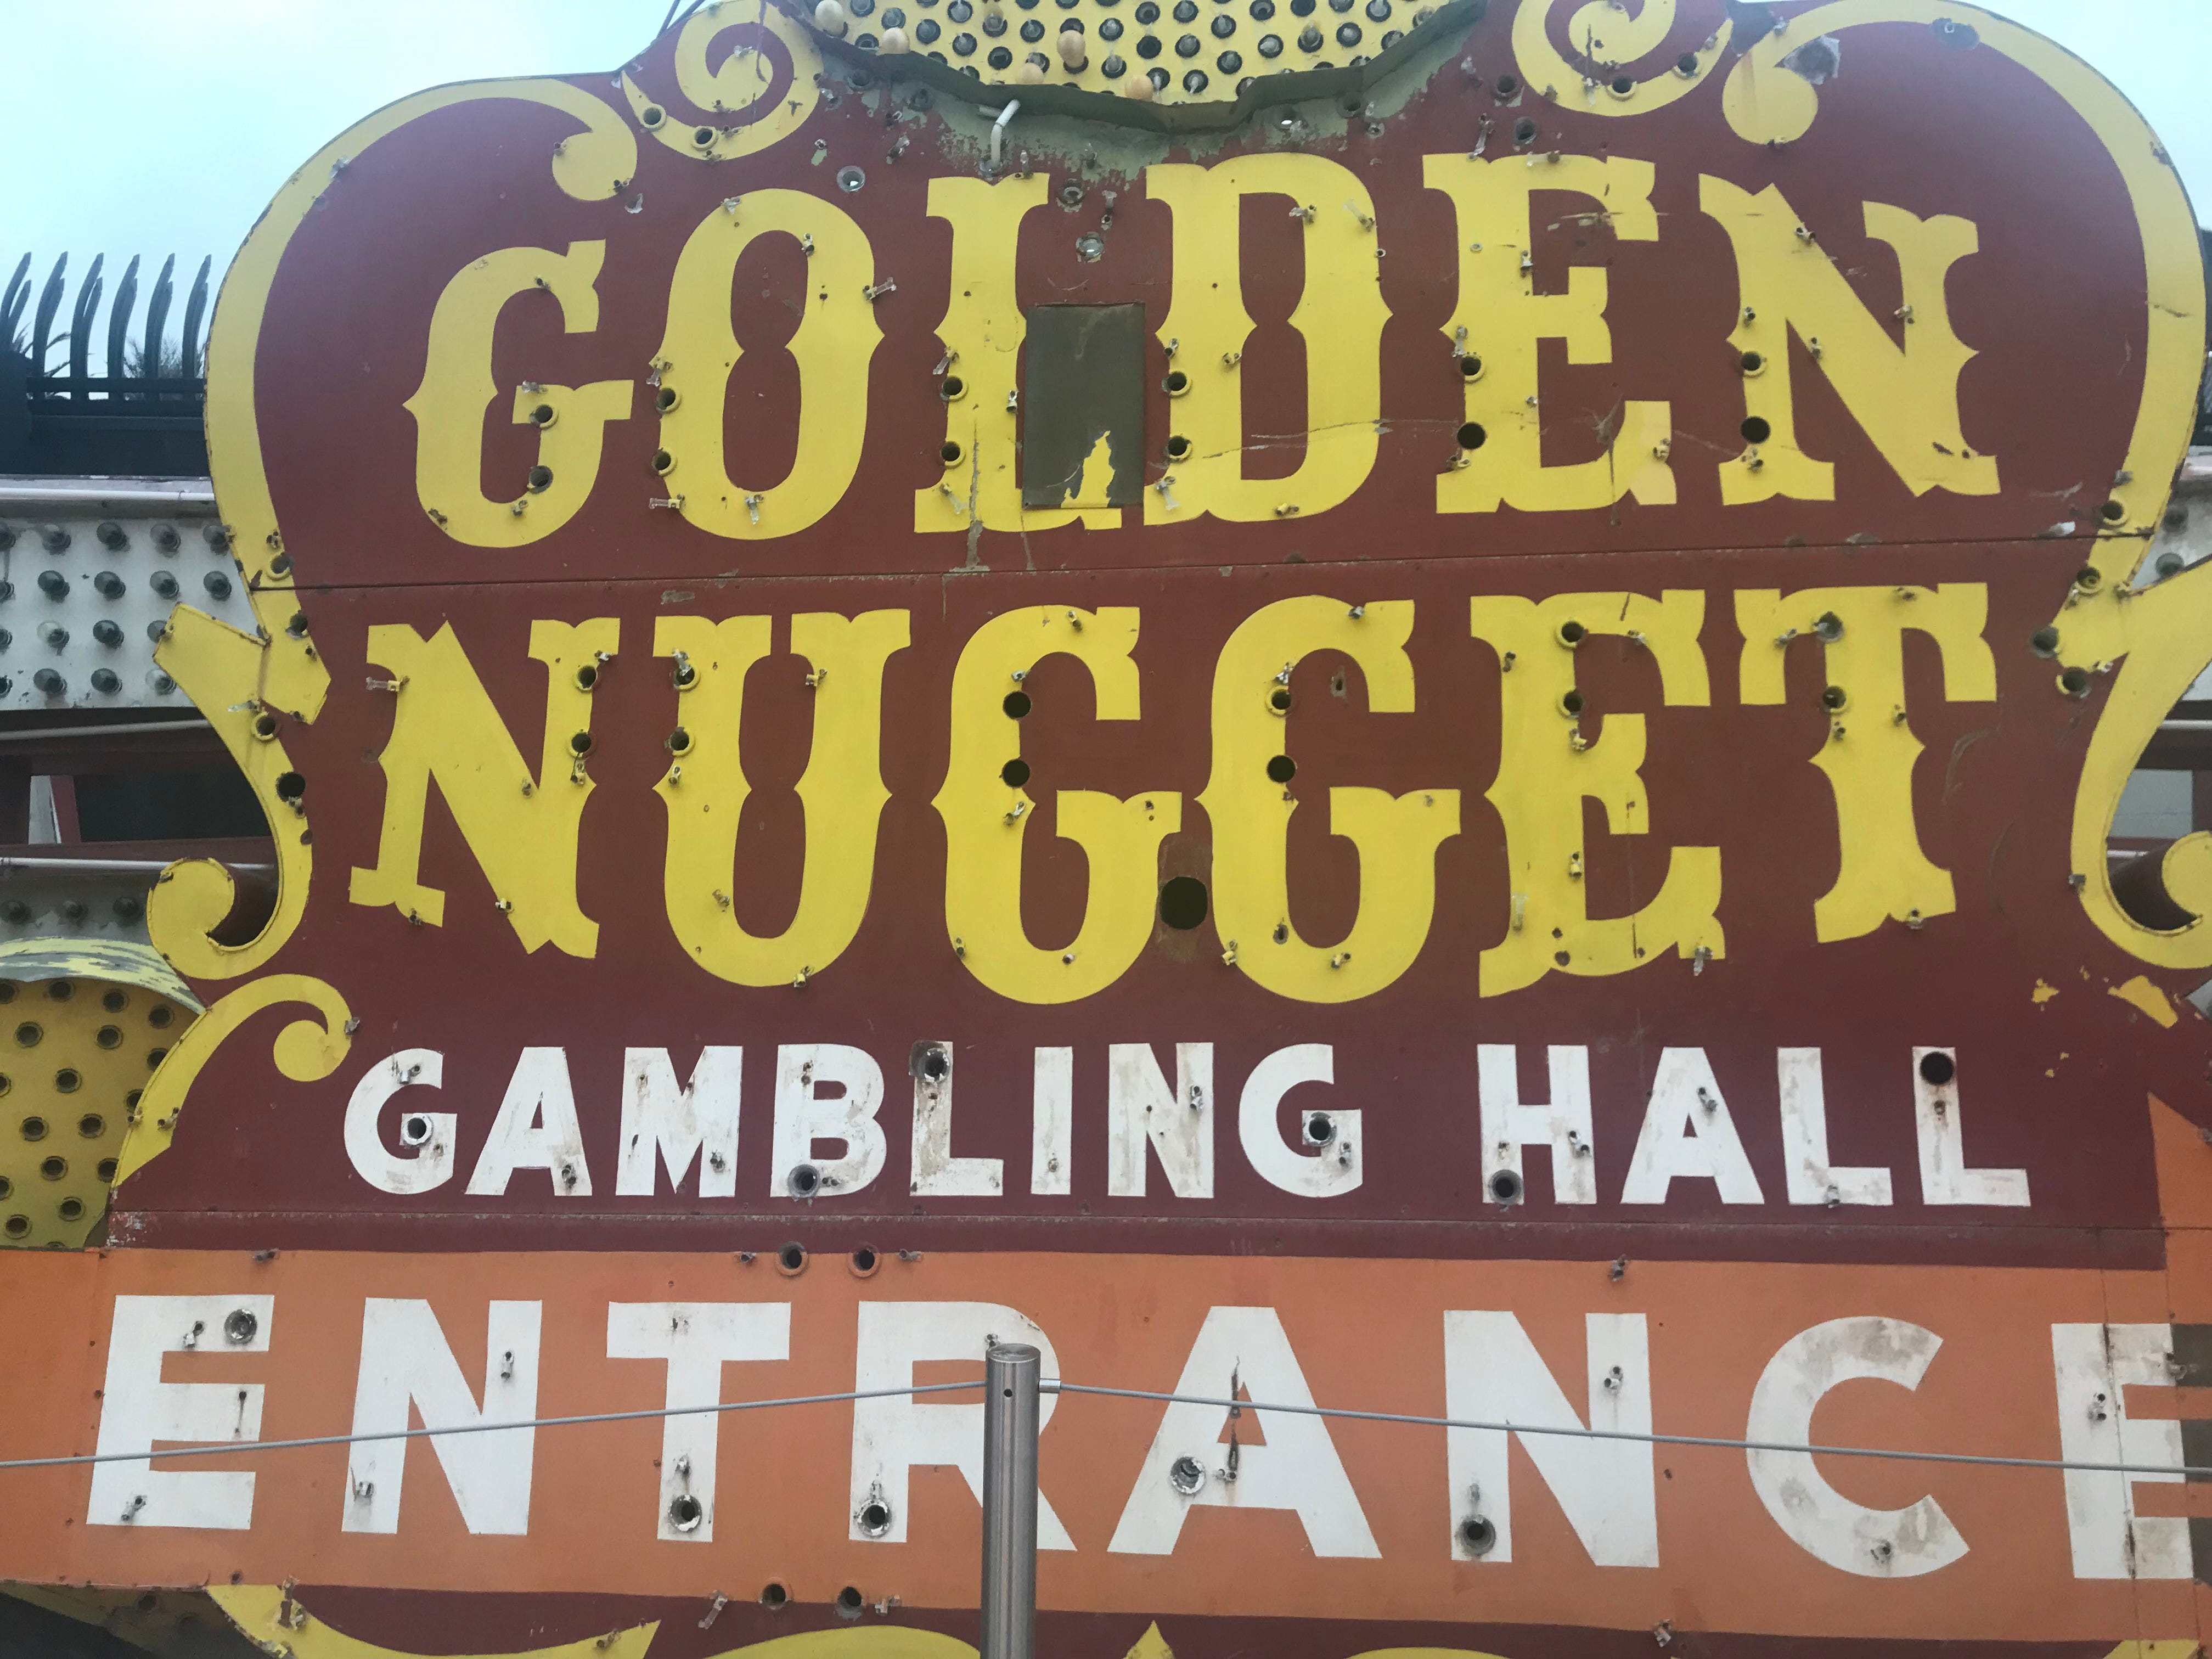 The Golden Nugget, which opened in 1946, is still a centerpiece of Fremont Street, but with a more modern sign.